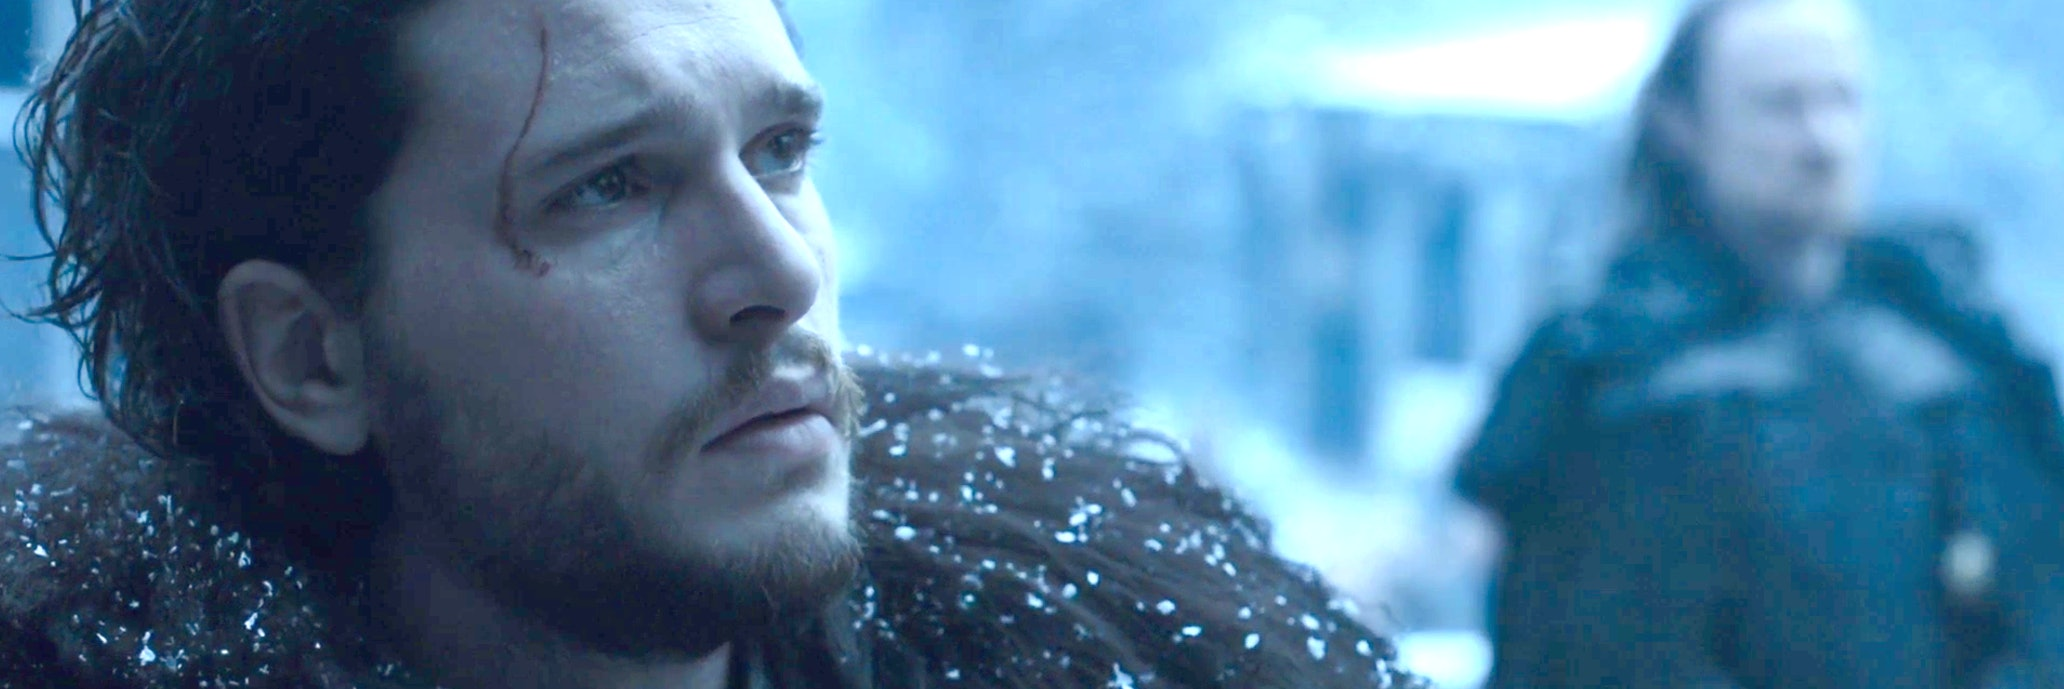 Jon Snow fights White Walkers in 'Game of Thrones'